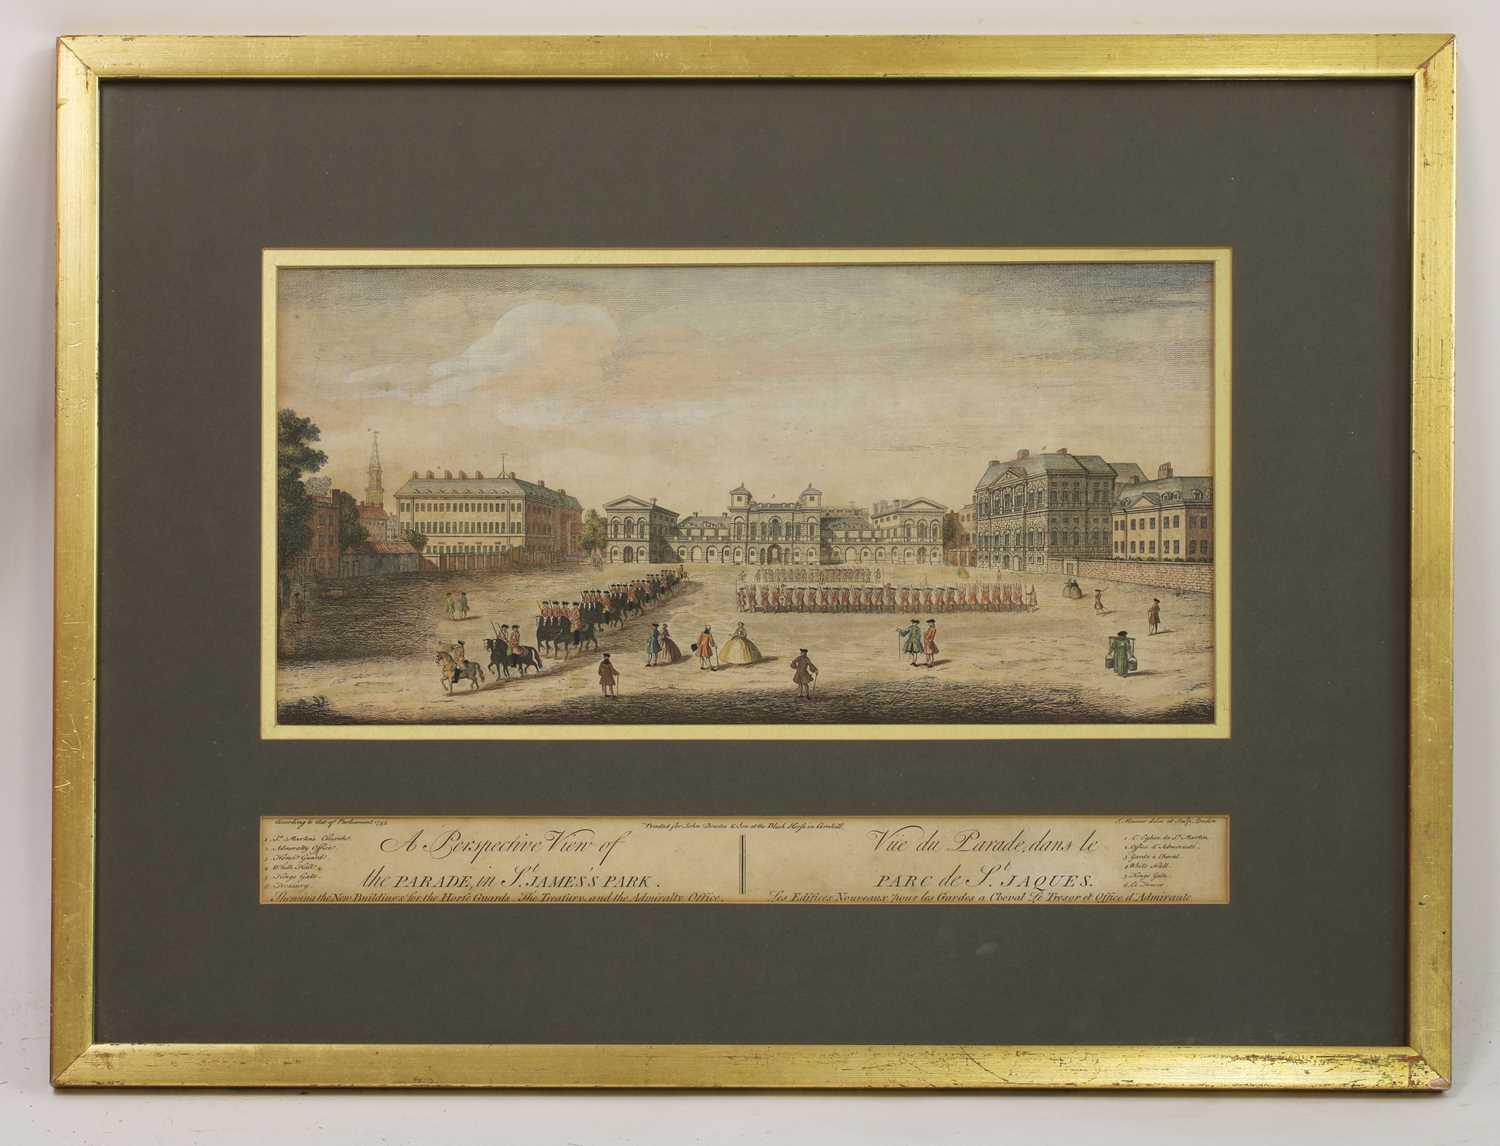 Jacques Rigaud (French, 1680-1754) - Image 9 of 16